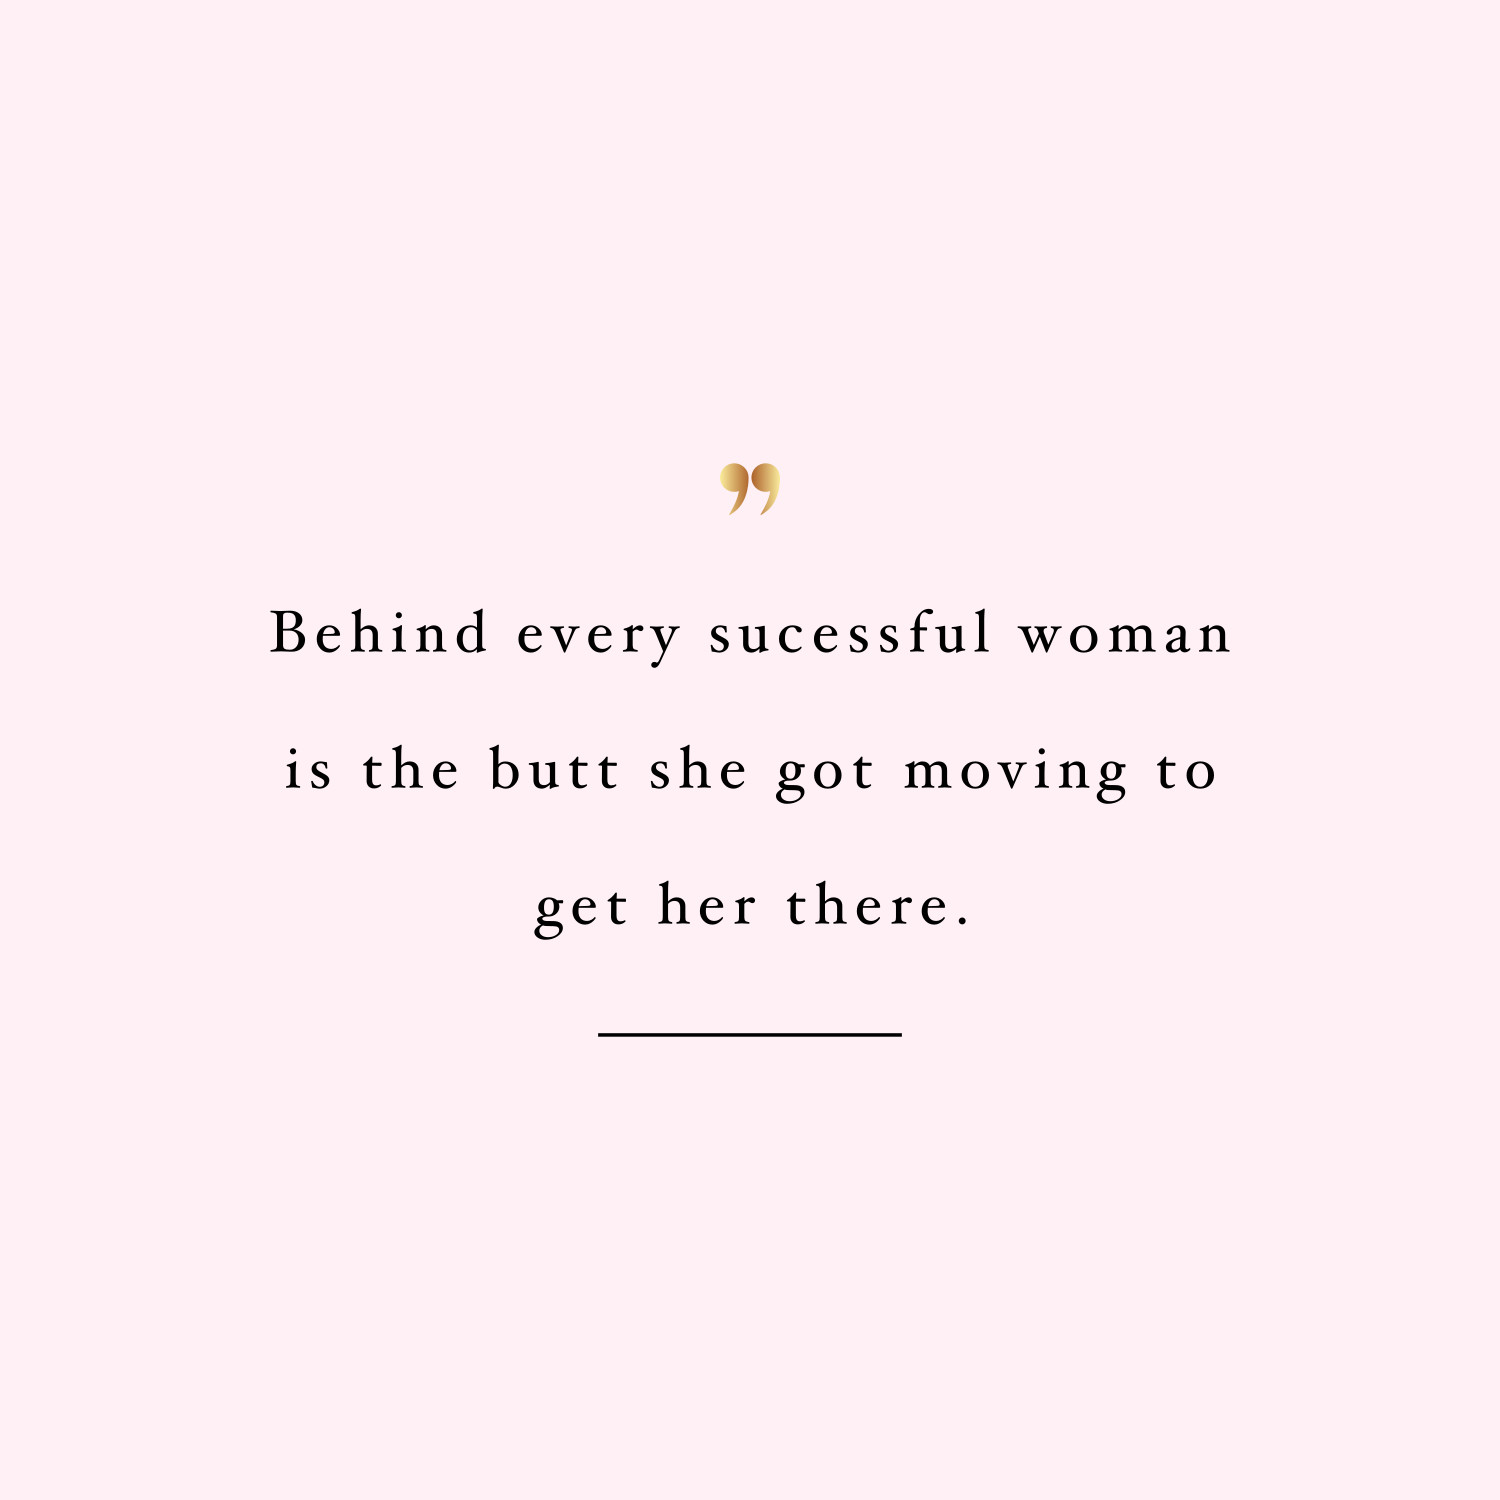 Move your butt! Browse our collection of training and healthy eating motivational quotes and get instant exercise and fitness inspiration. Transform positive thoughts into positive actions and get fit, healthy and happy! https://www.spotebi.com/workout-motivation/move-your-butt/